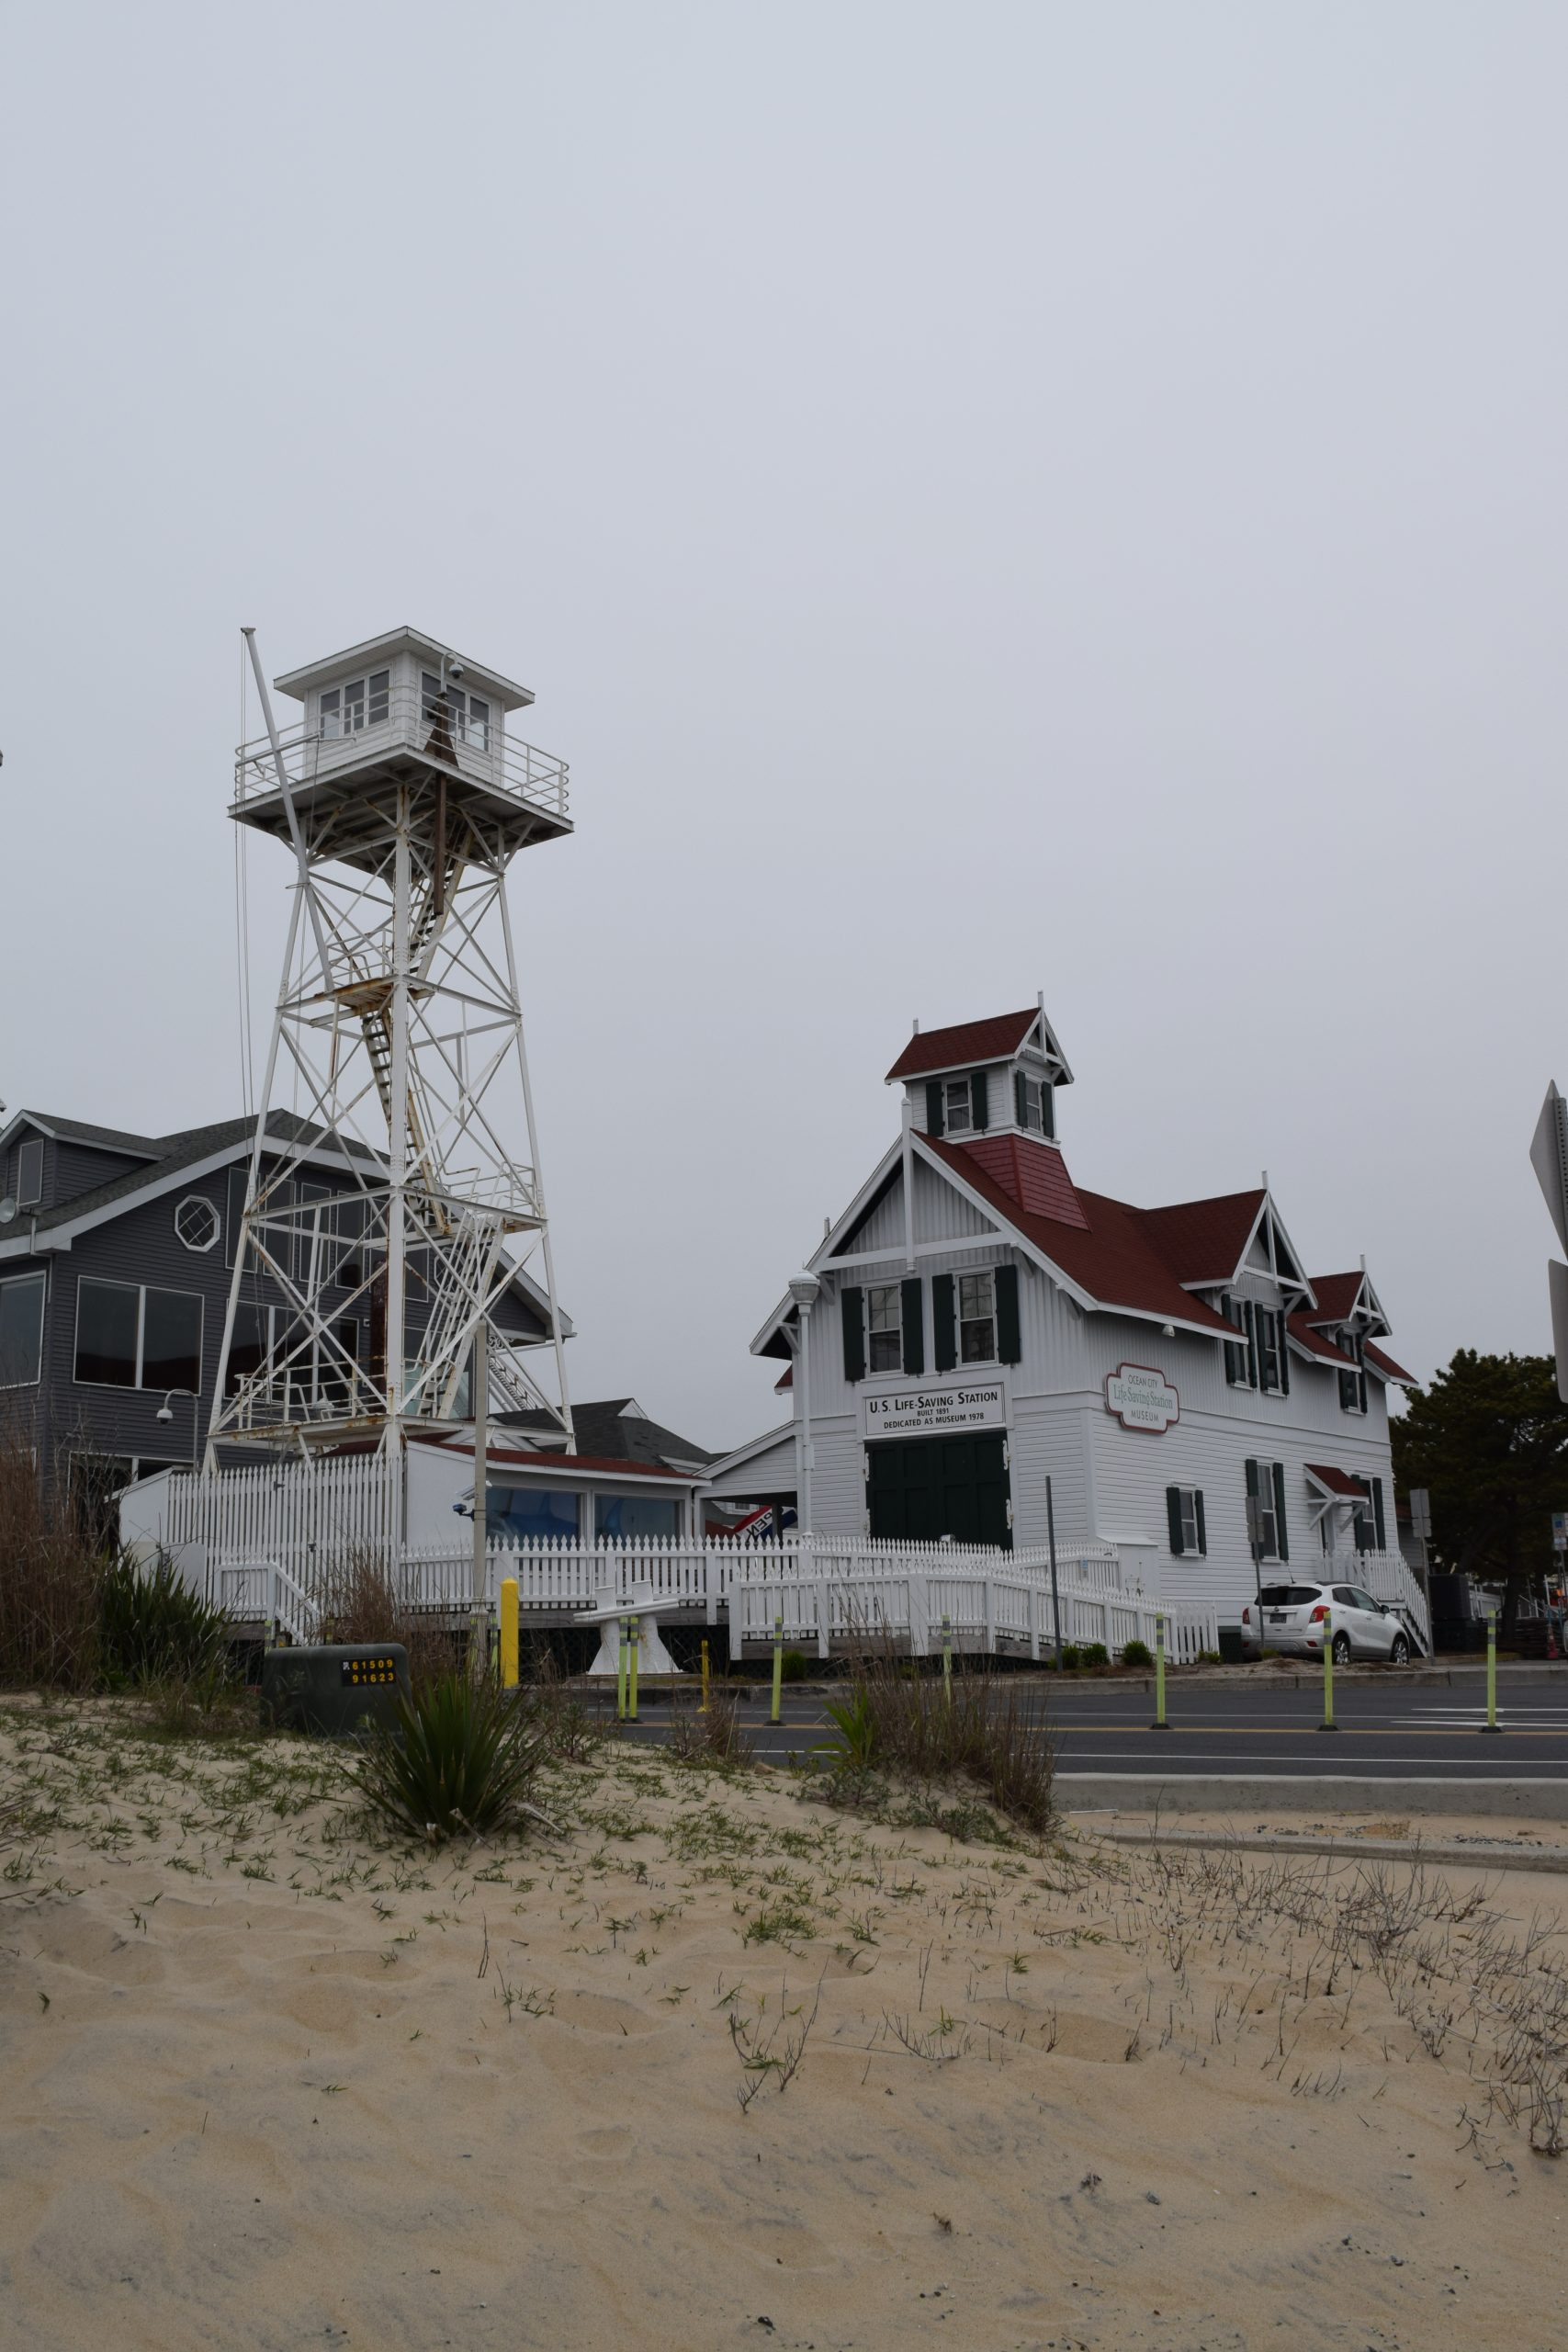 Ocean City Maryland life saving station